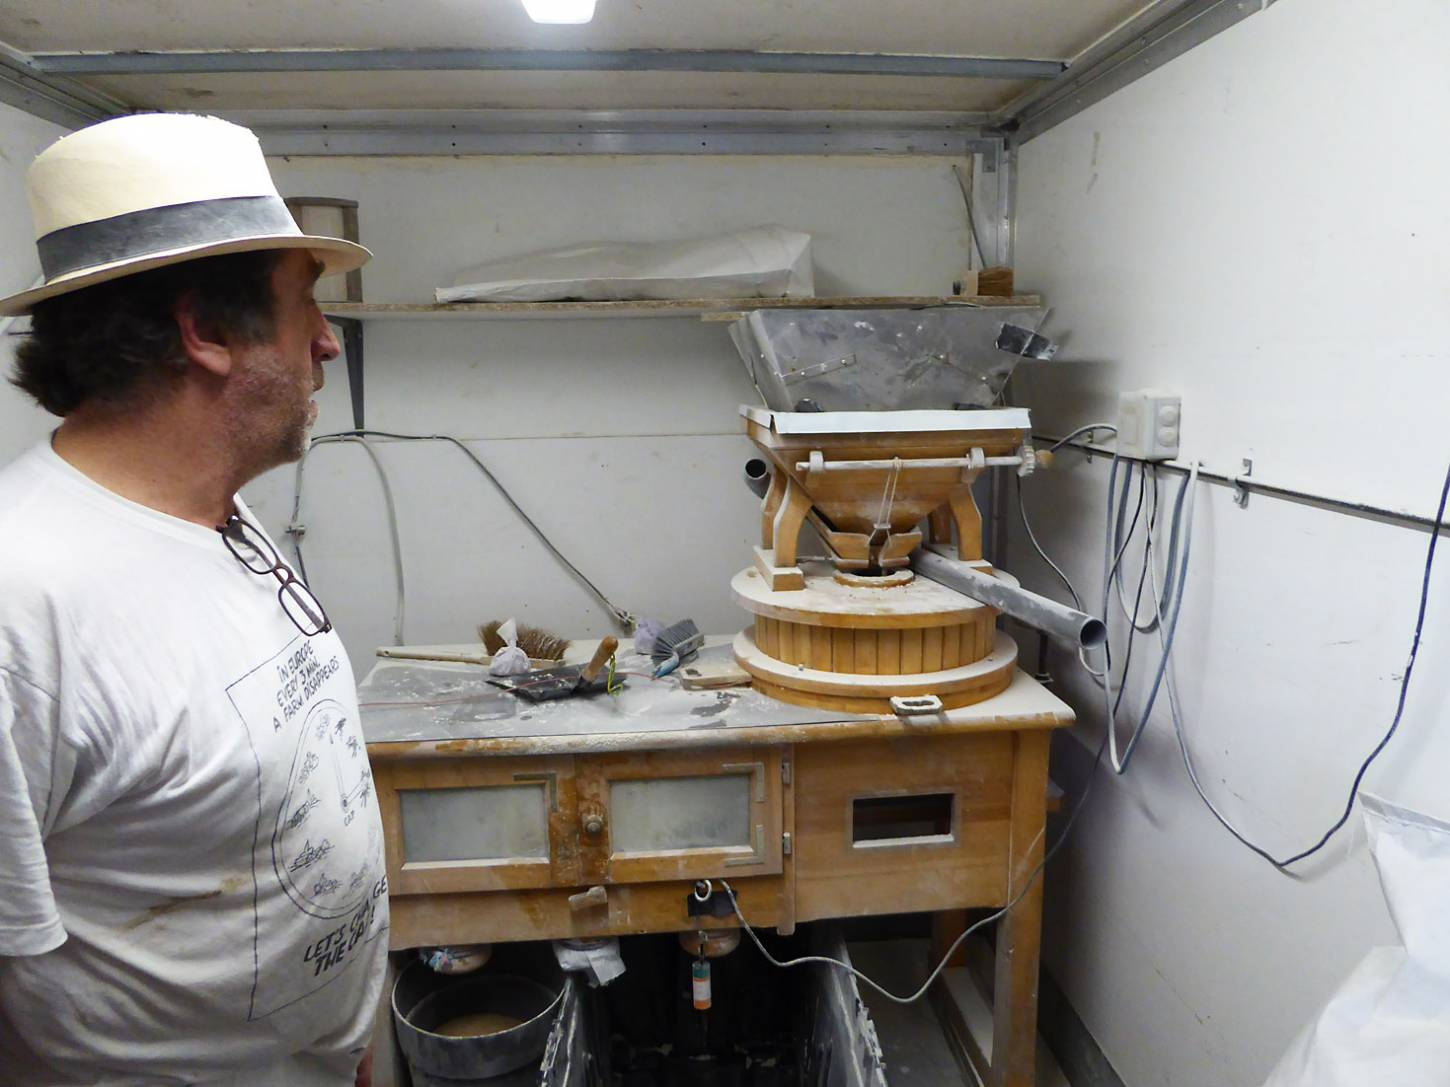 visiting heritage wheat farmer <a href='https://www.facebook.com/paysanbio.semencespaysannes' target='_blank'>Phillipe Guichard</a>, mill room, France, May '17 - 9:57am&nbsp;15<sup>th</sup>&nbsp;May.&nbsp;'17  <a href='http://maps.google.com/?t=h&q=44.478631,0.658150&z=18&output=embed' target=_blank><img src='http://www.brockwell-bake.org.uk/img/marker.png' style='border:none;vertical-align:top' height=16px></a>